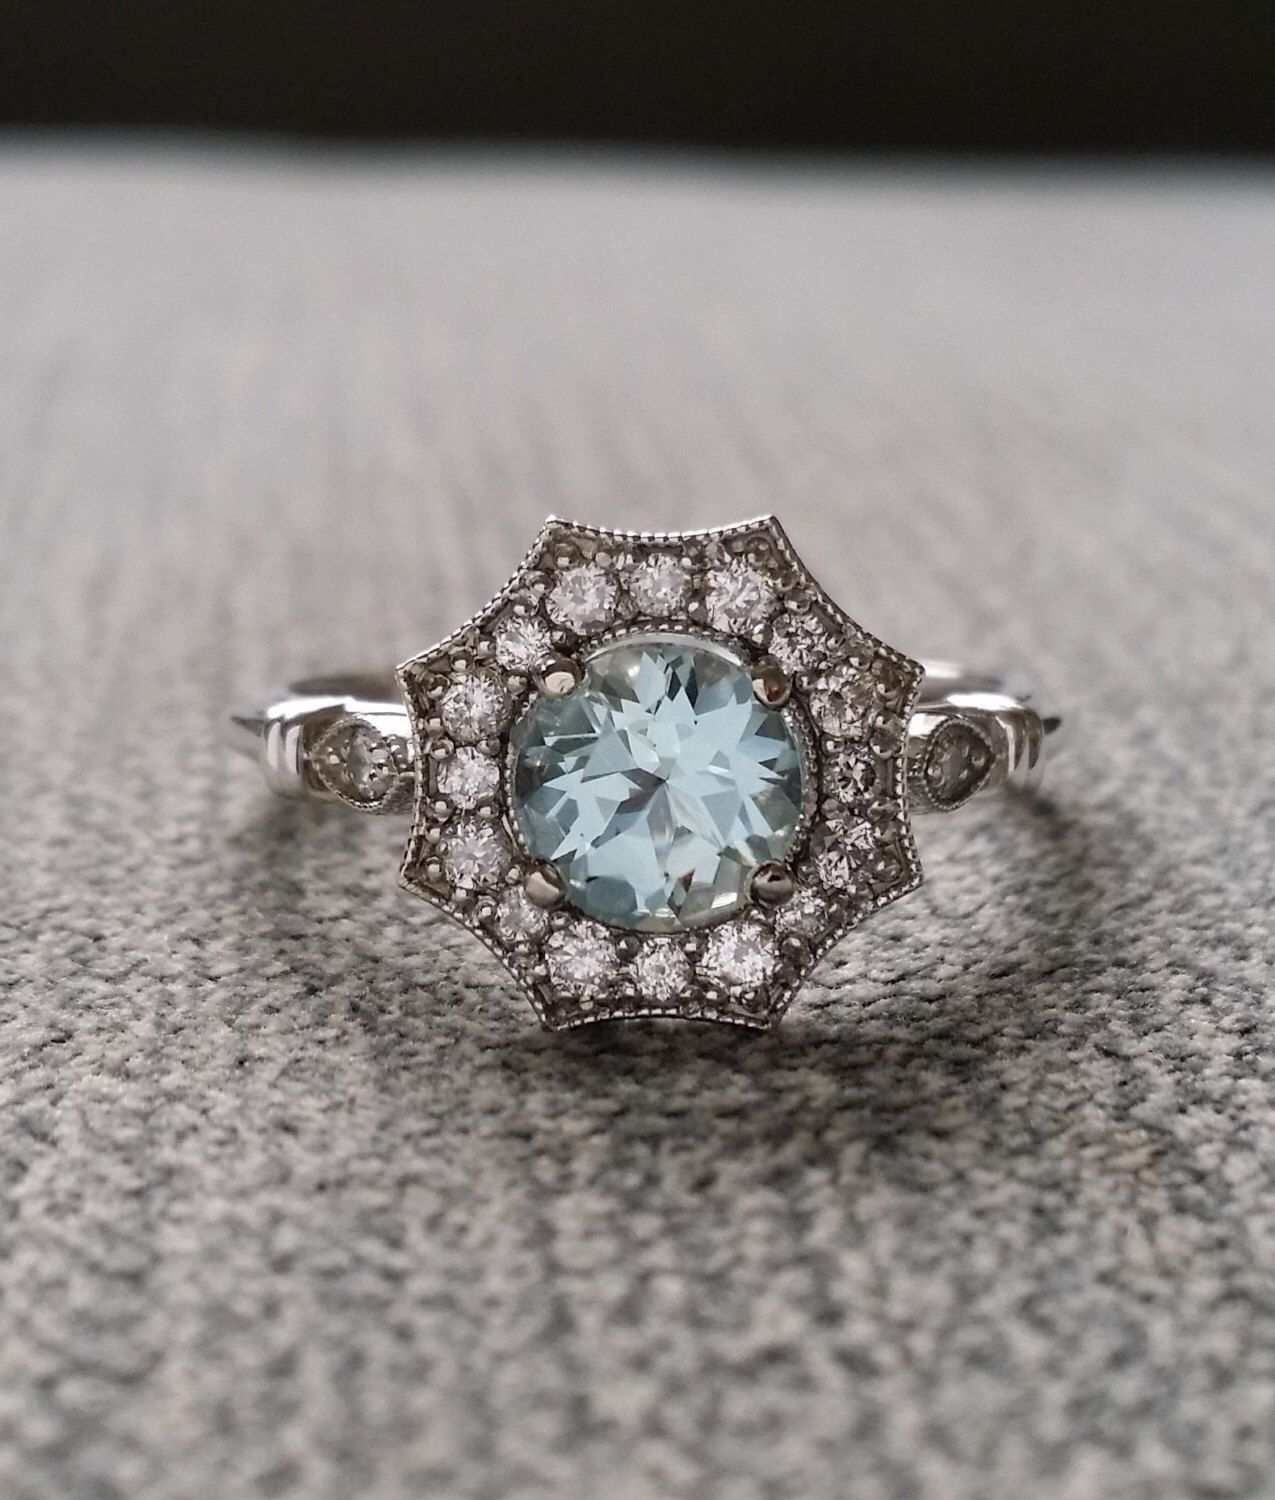 Halo Aquamarine And Diamond Ring Gemstone Engagement Ring Antique Inside 2017 Diamond Octagon Frame Vintage Style Engagement Rings In 14K White Gold (Gallery 10 of 15)